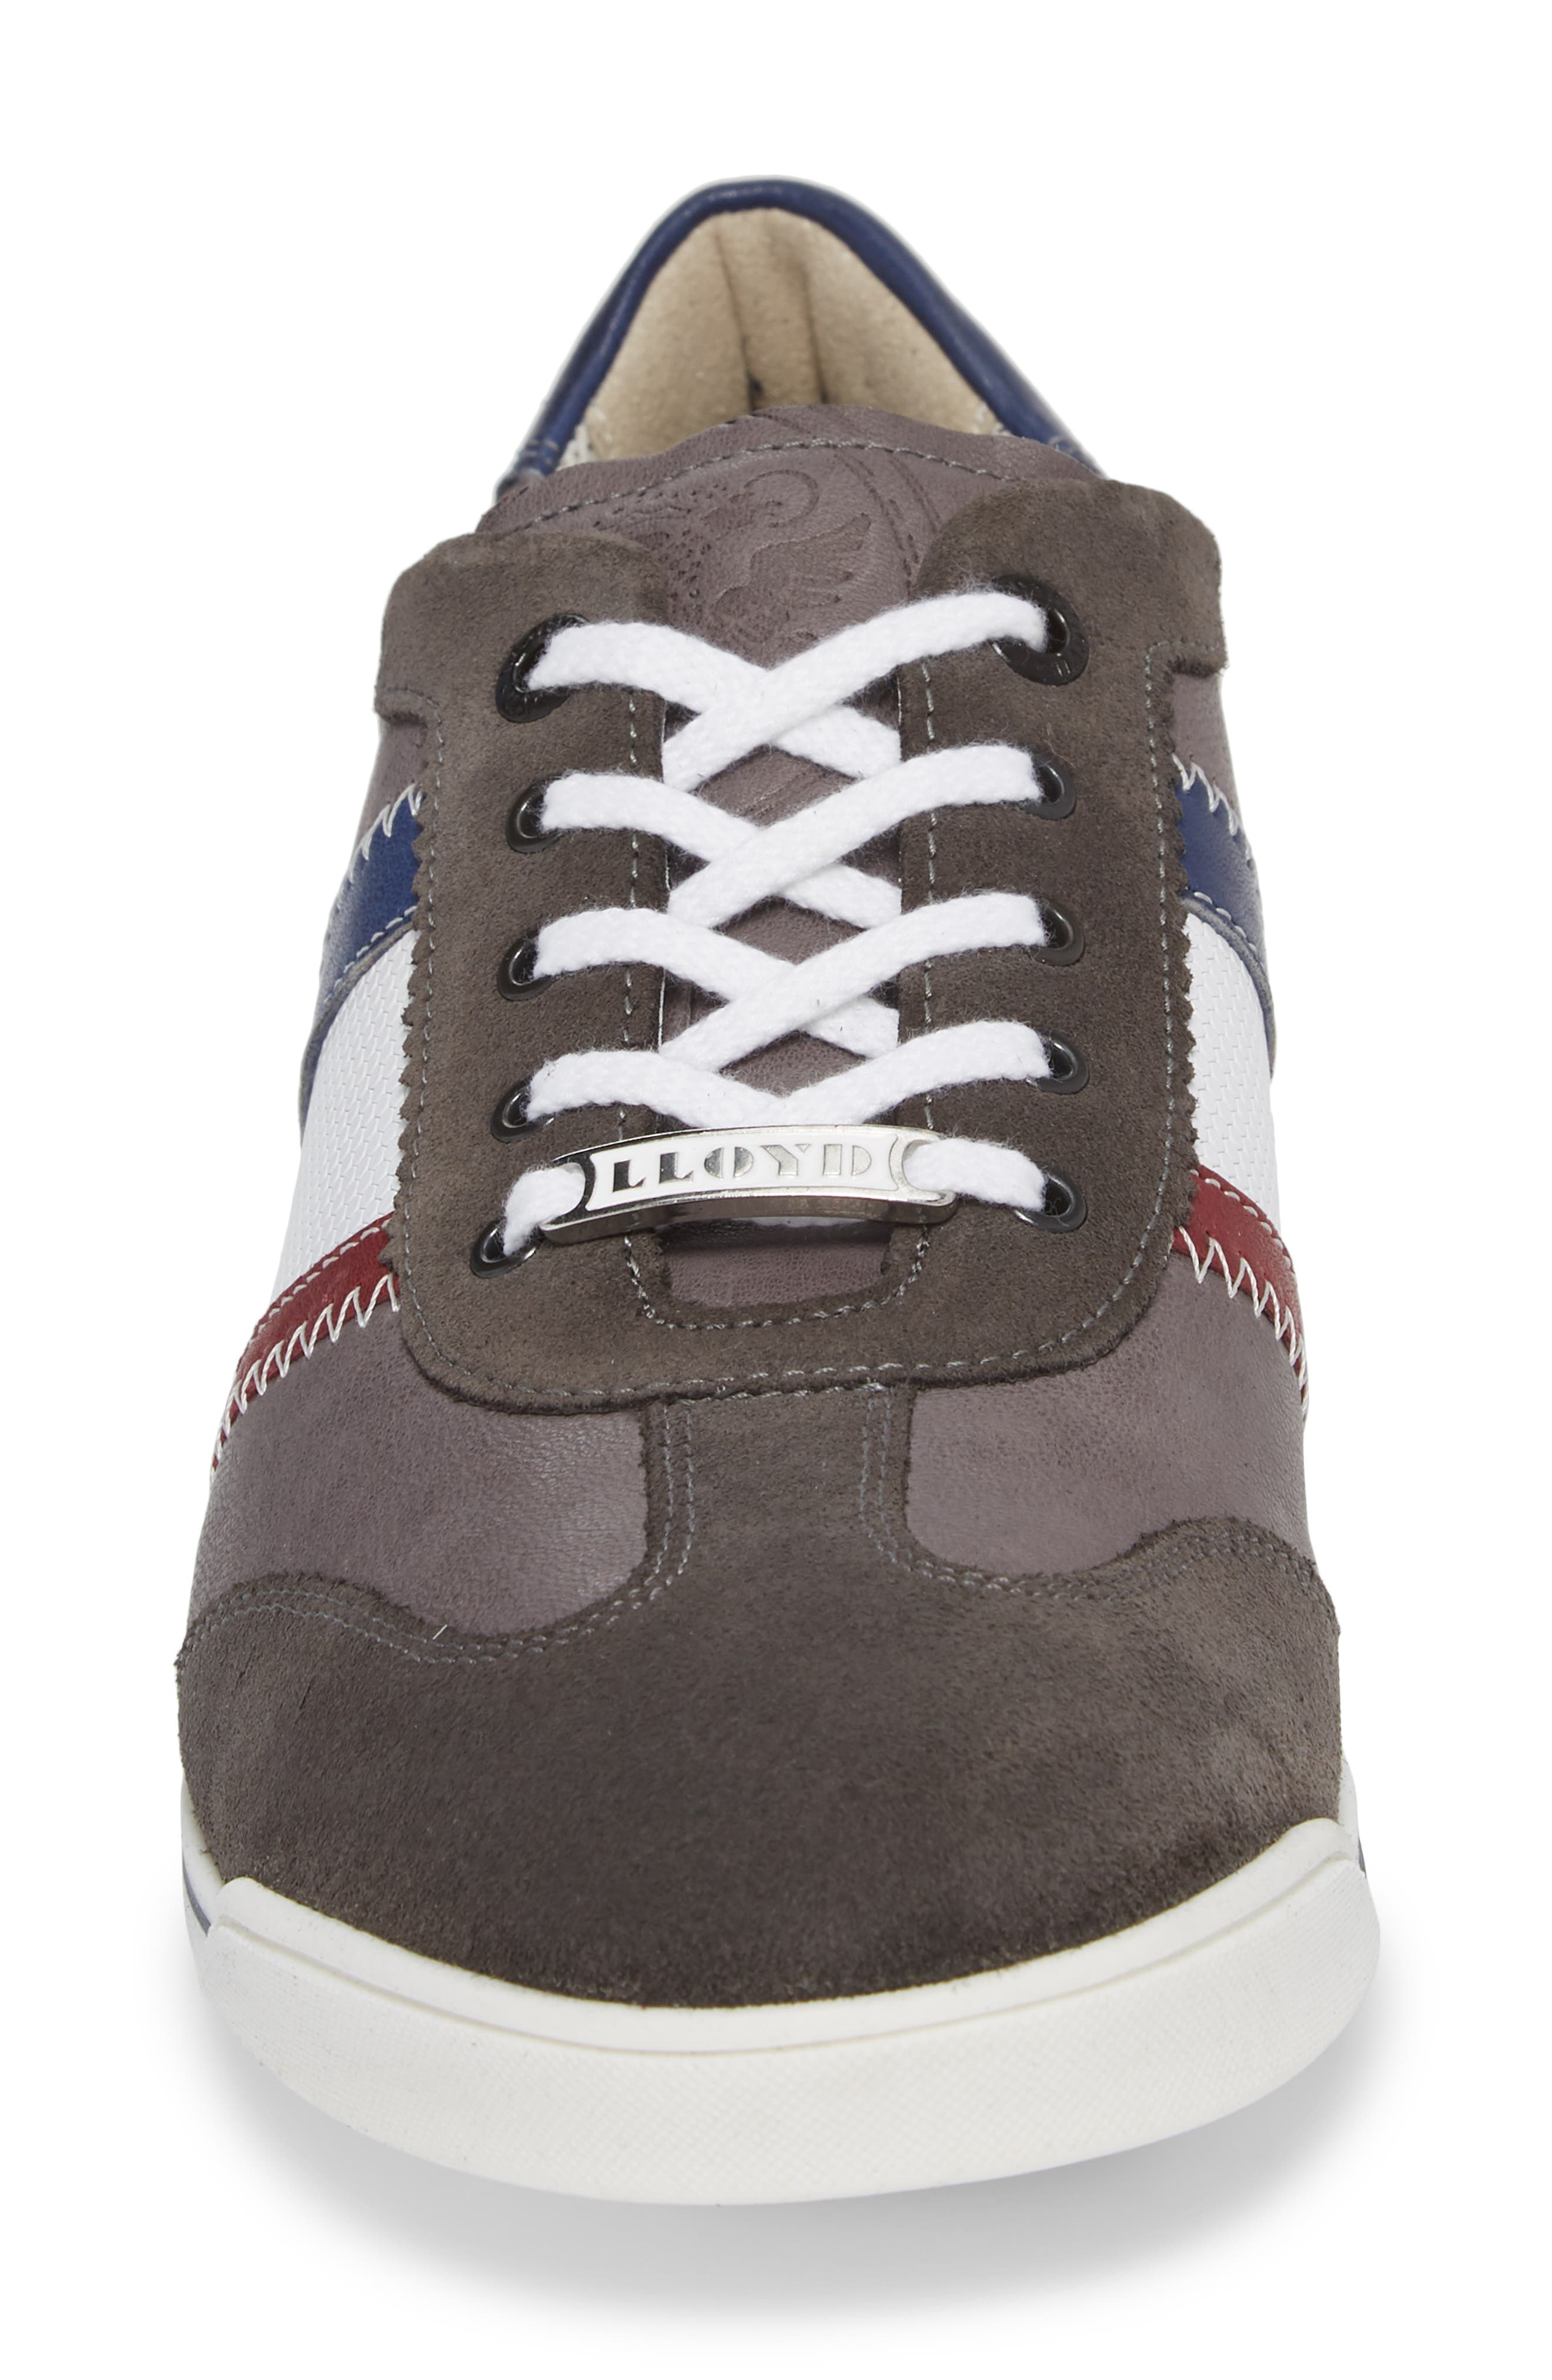 Aaron Low Top Sneaker,                             Alternate thumbnail 4, color,                             Grey Leather/ Suede